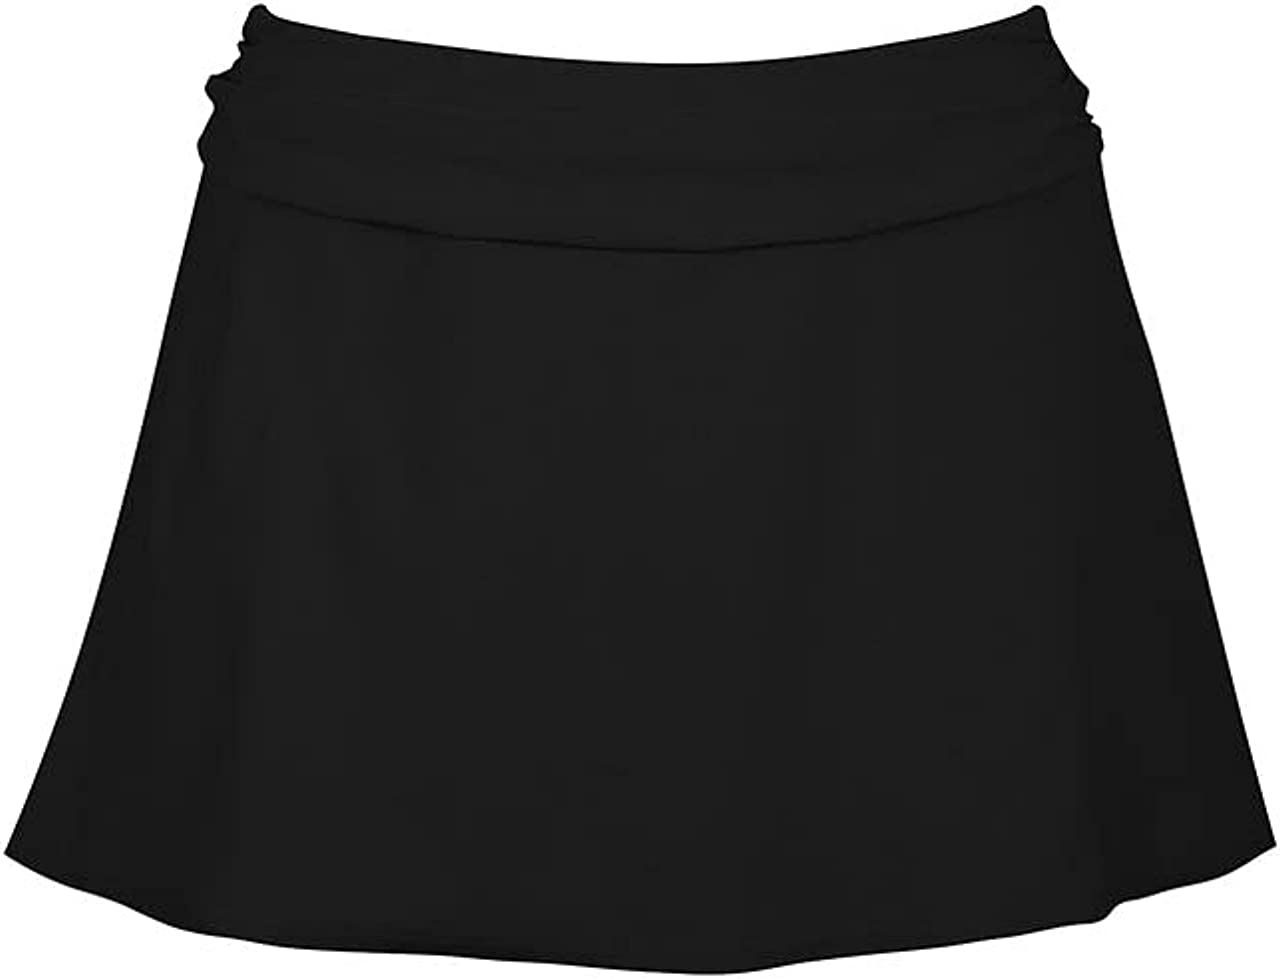 Karla Colletto Banded Lace Up Skirt